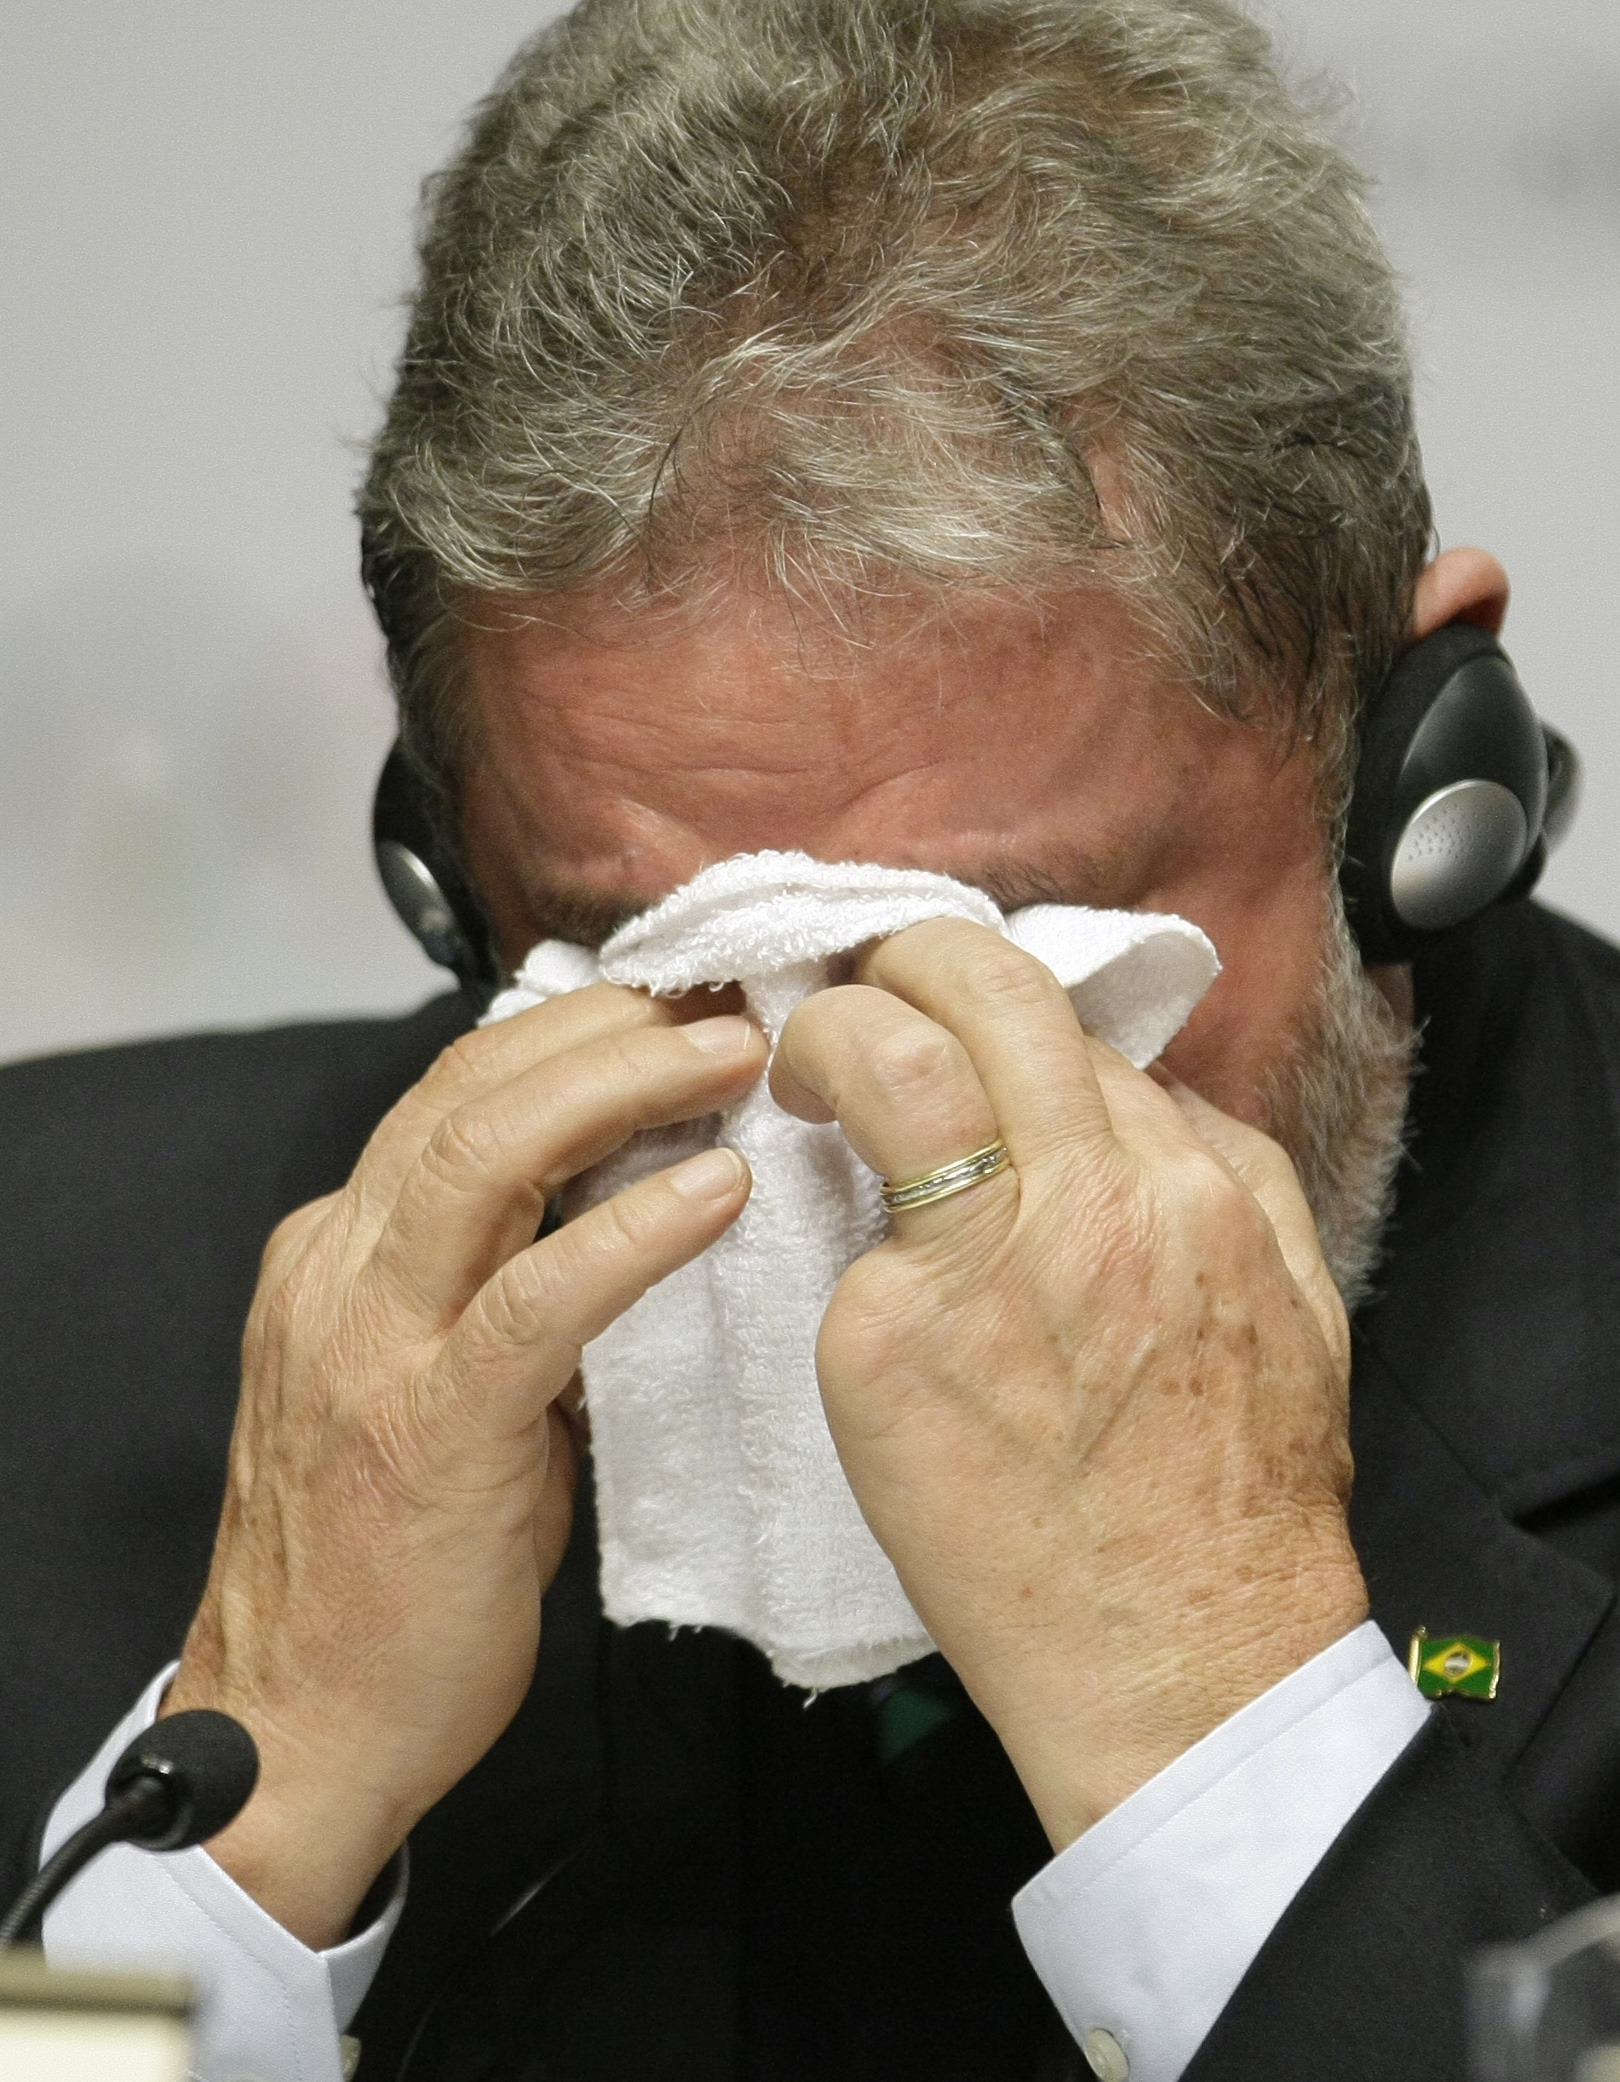 FILE - In this  Oct. 2, 2009 file photo, Brazilian President Luiz Inacio Lula de Silva wipes away tears during a press conference after Rio de Janiero was awarded the 2016 Olympic Games during the 121st IOC session in Copenhagen. Da Silva, who wept tears